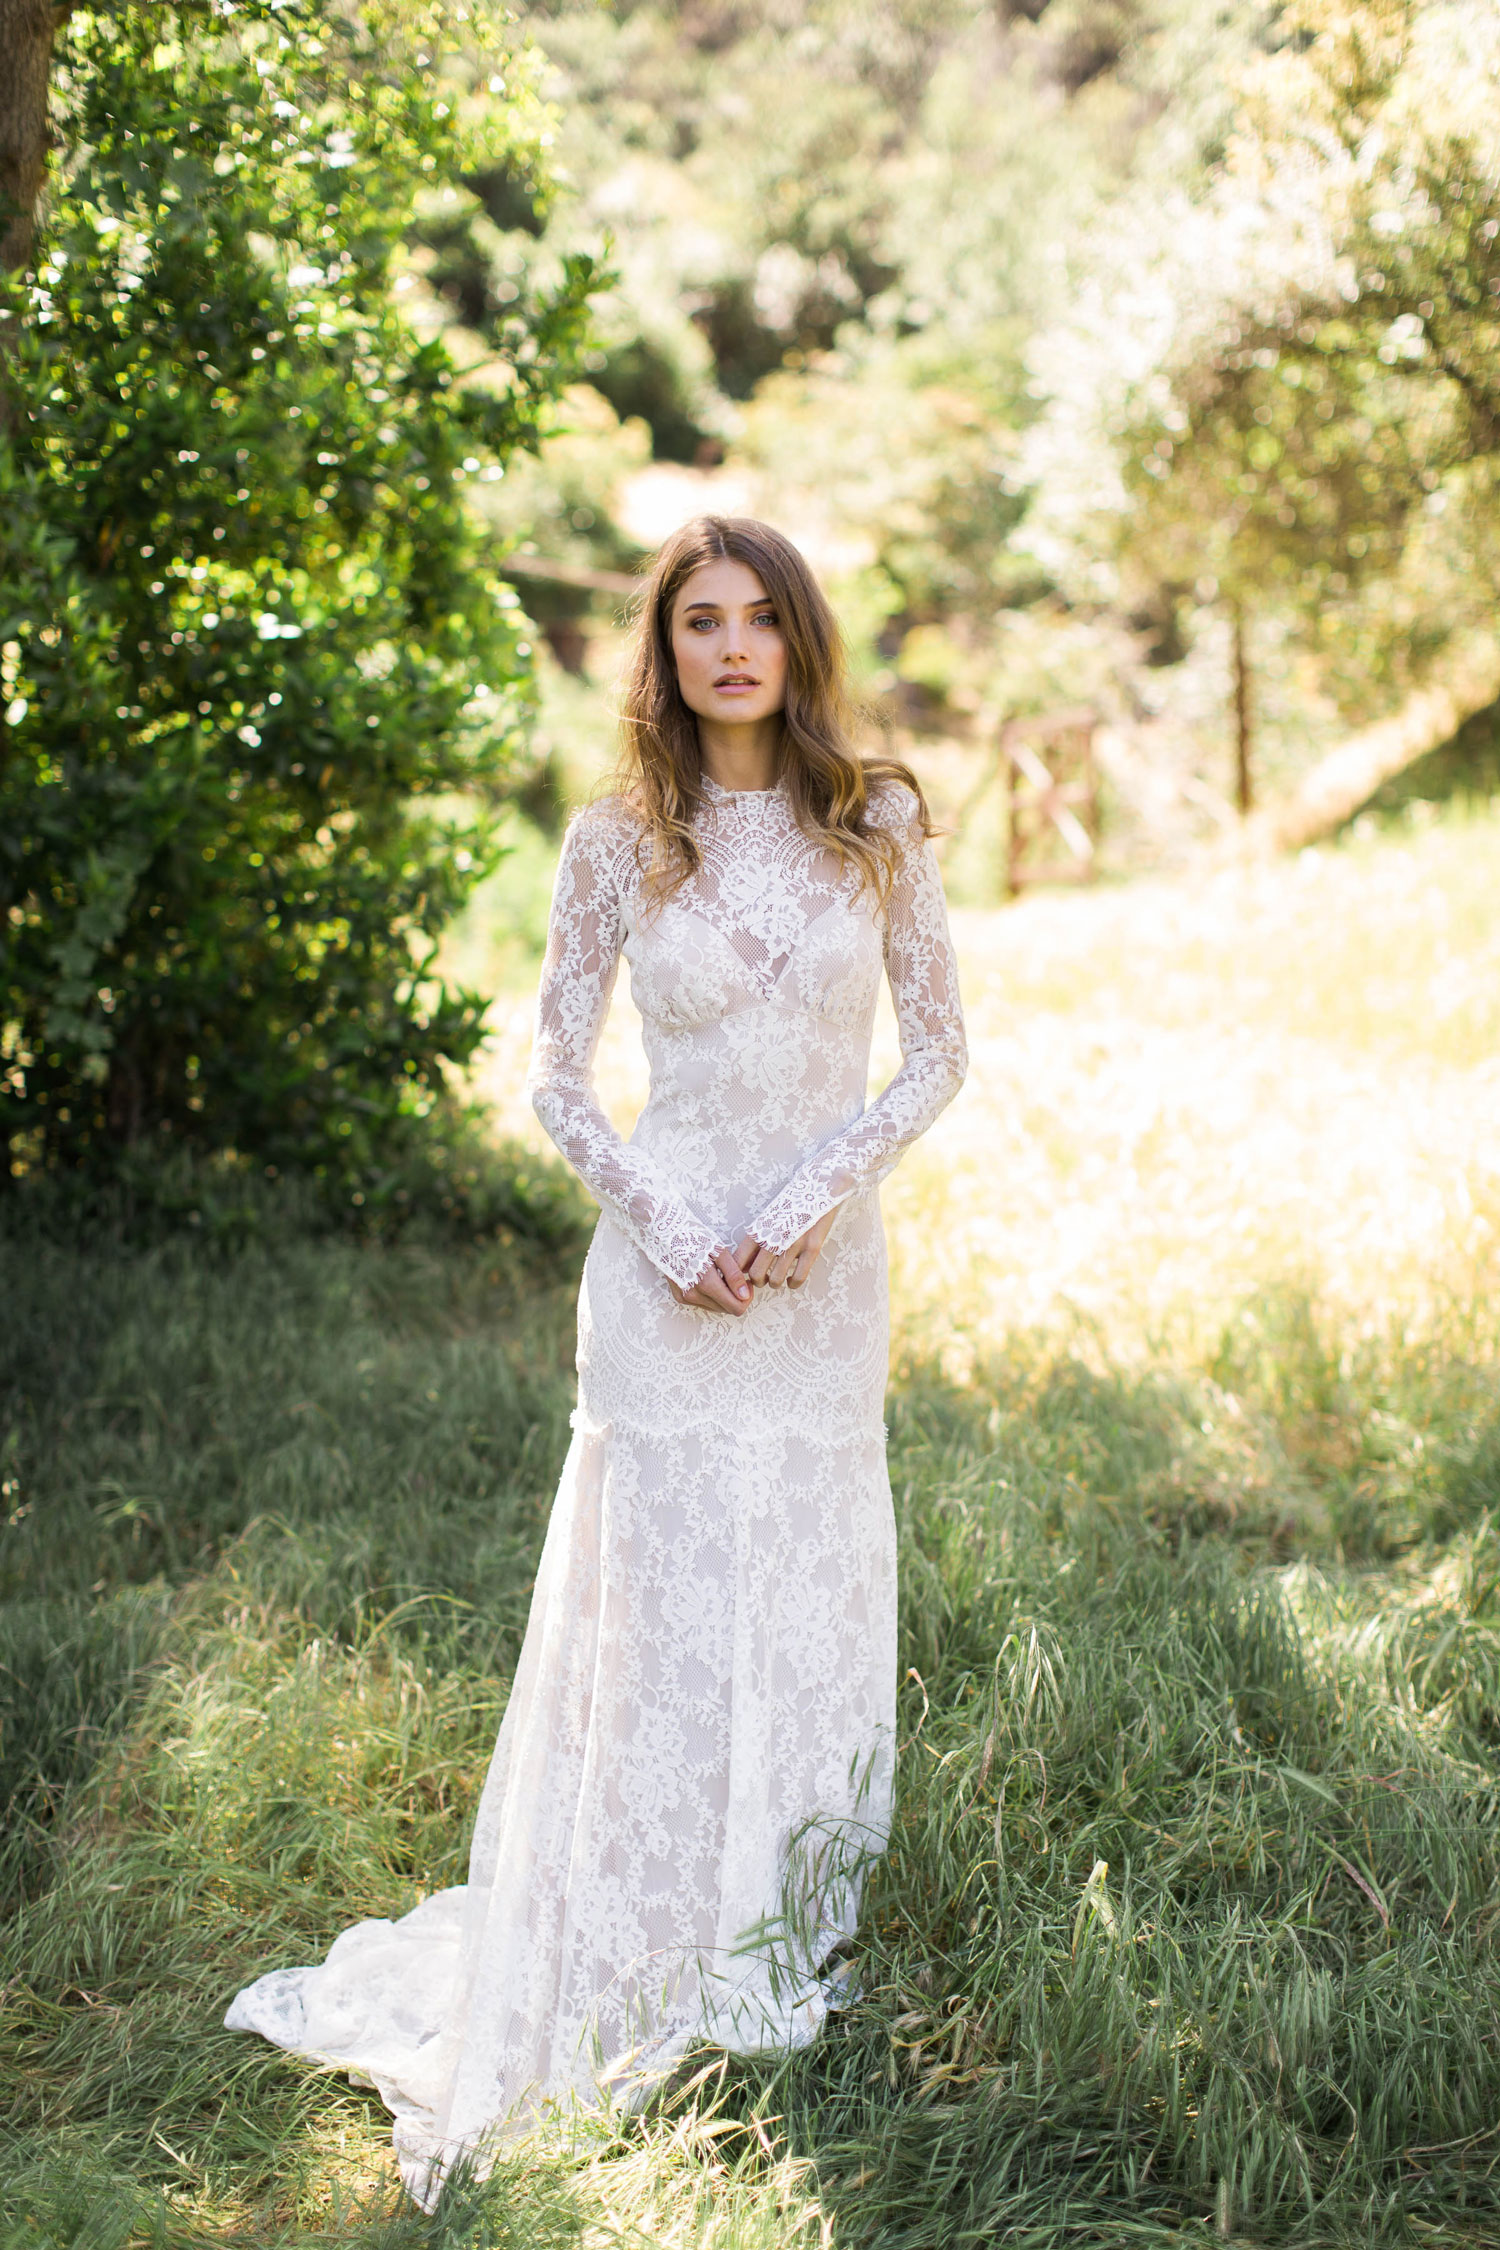 Claire Pettibone Romantique stylized shoot in Malibu California Dreamin' collection Beverly wedding dress